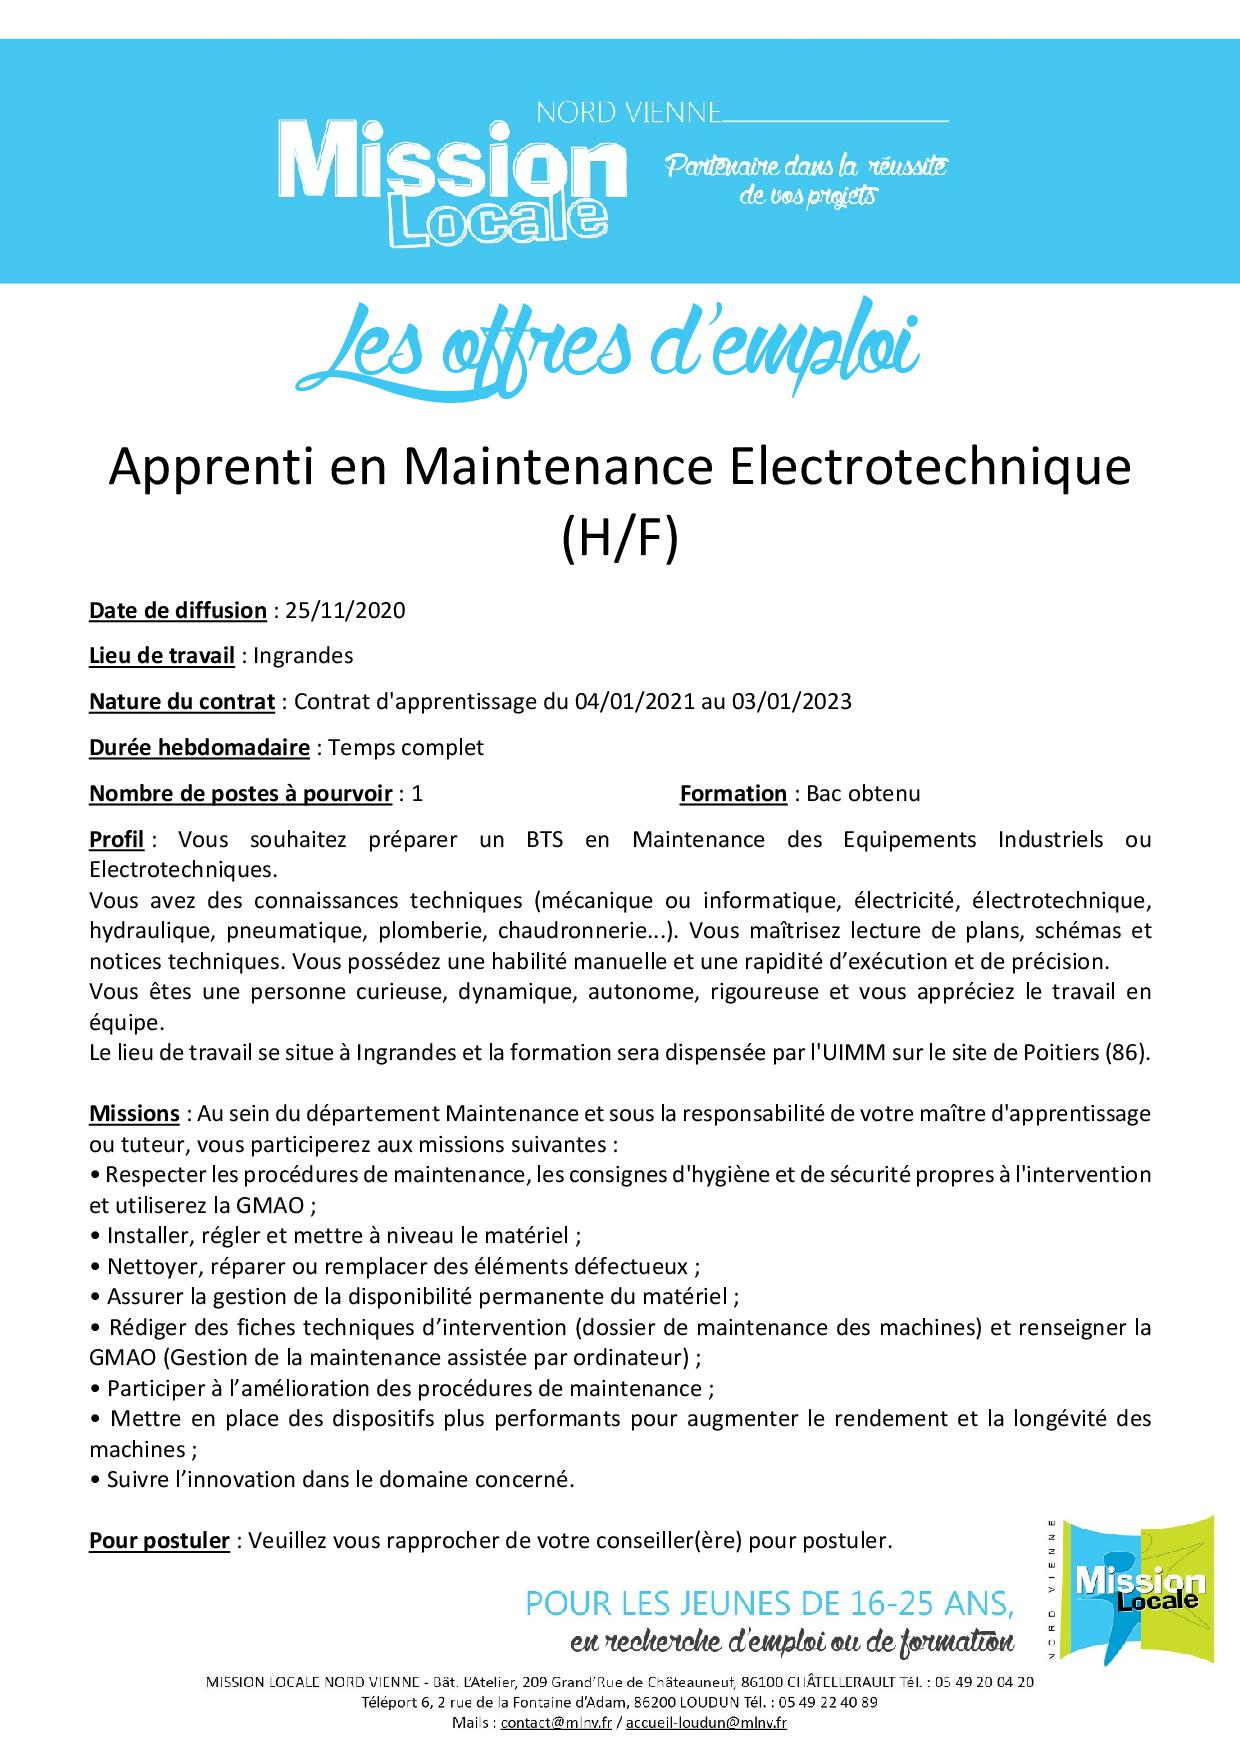 Apprenti en Maintenance Electrotechnique (H/F)